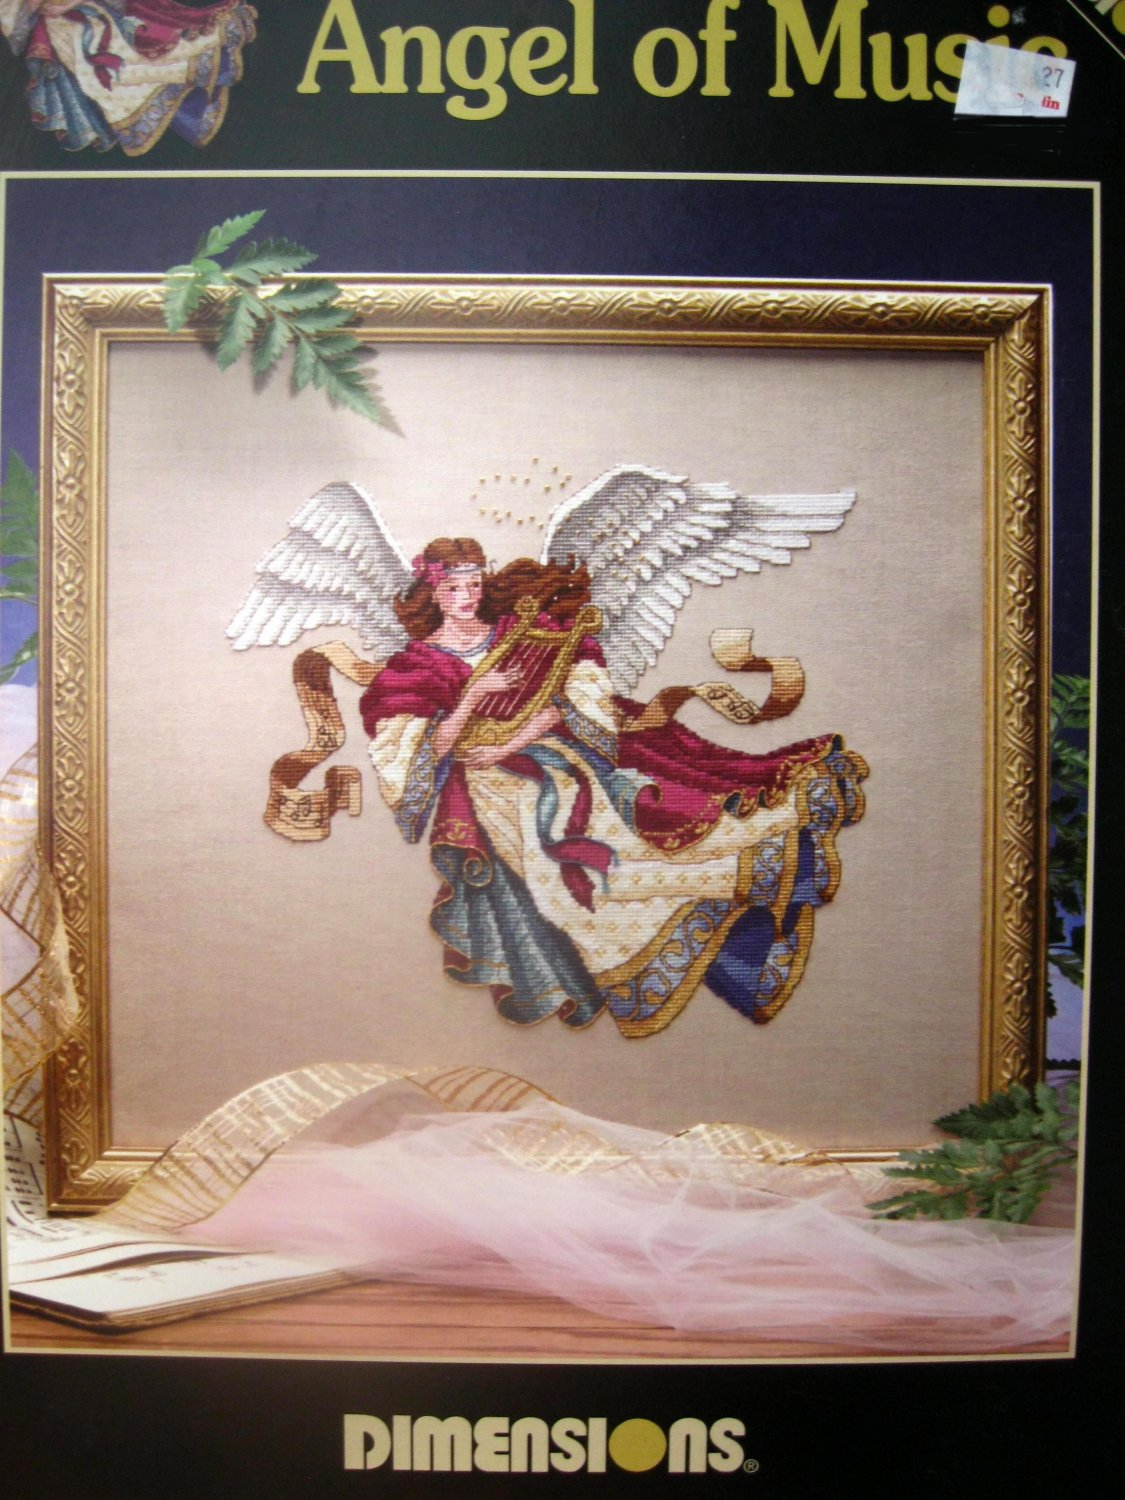 Corner Shelf Dimensions - Angel Of Music - James Himsworth Cross Stitch